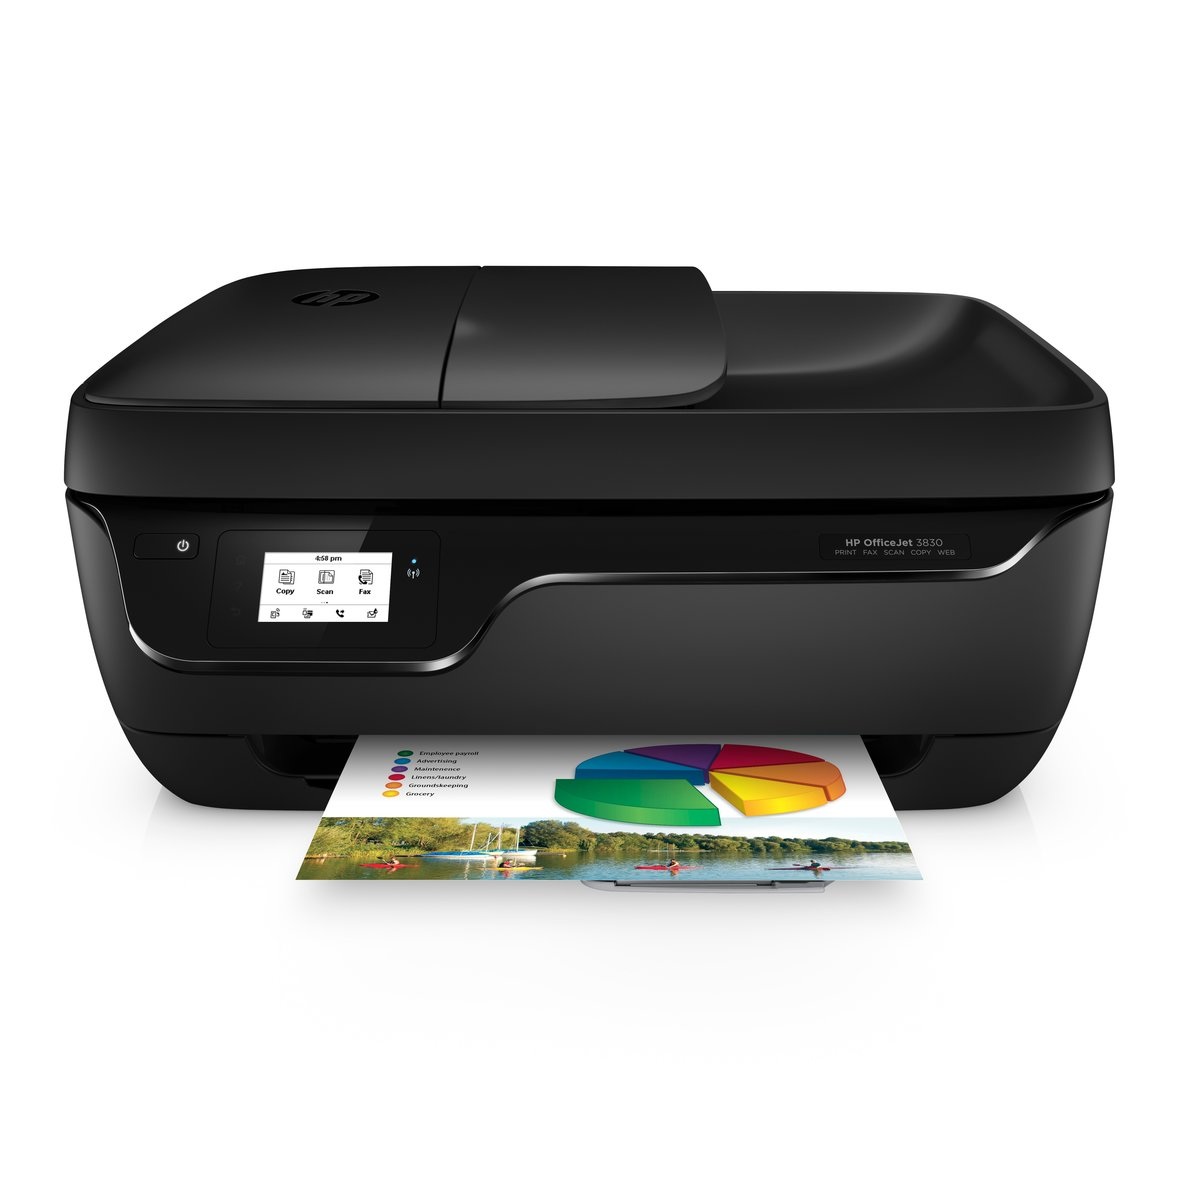 Contemporary One Wireless Printer Media Hp Officejet All Mobile Printing Why Is My Printer Printing Blank Pages Hp Deskjet Why Is My Printer Printing Blank Pages New Ink dpreview Why Is My Printer Printing Blank Pages